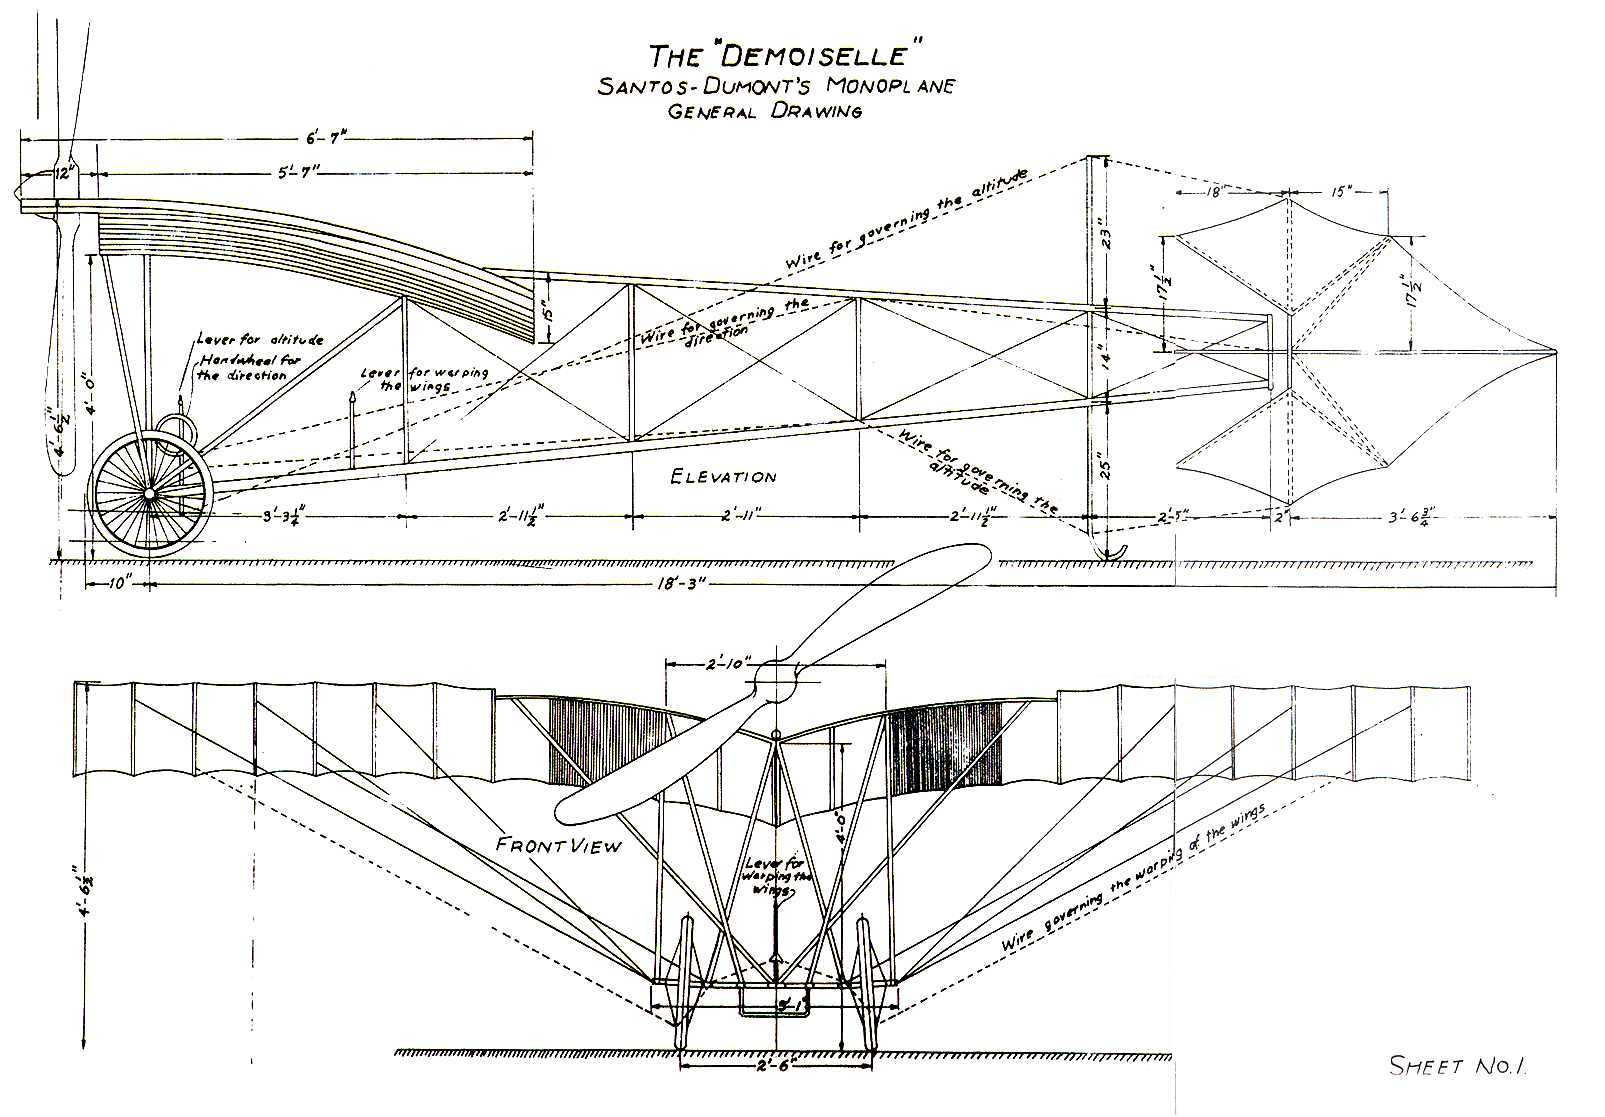 The plans for Alberto Santos-Dumont's Demoiselle.